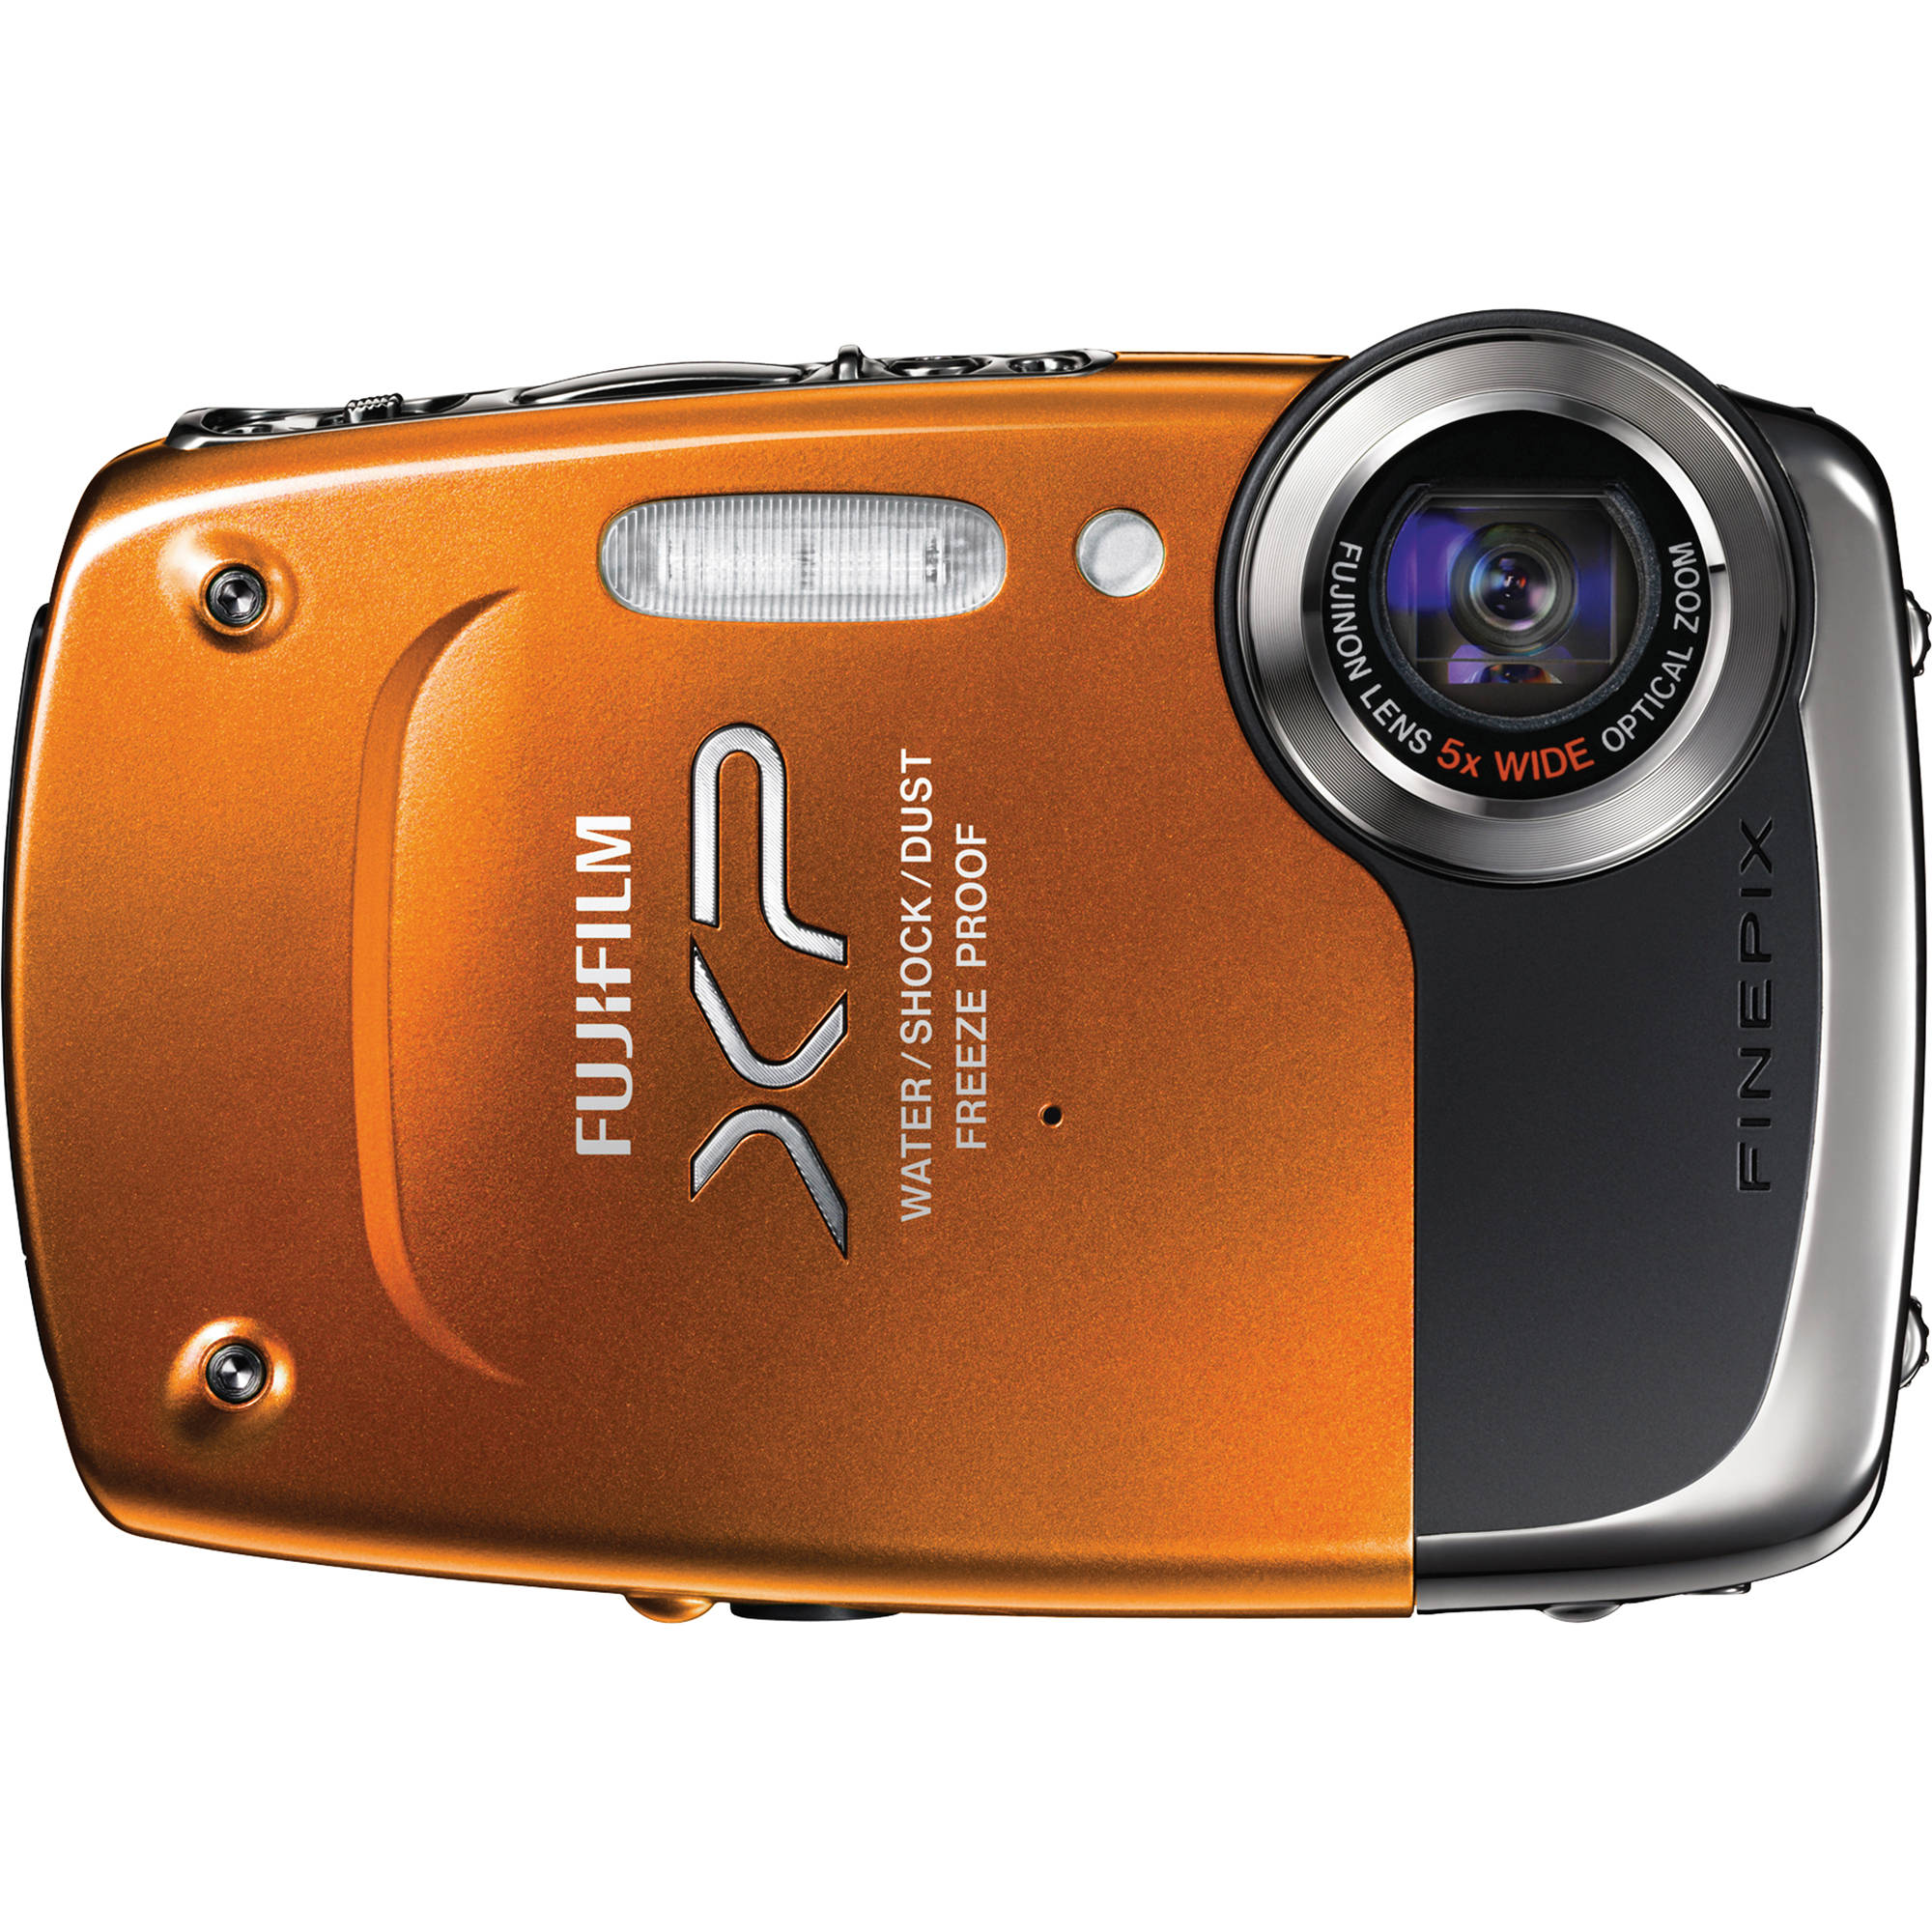 fujifilm finepix xp20 digital camera orange 16124810 b h photo rh bhphotovideo com fuji x20 manual Fuji FinePix S6800 Digital Camera